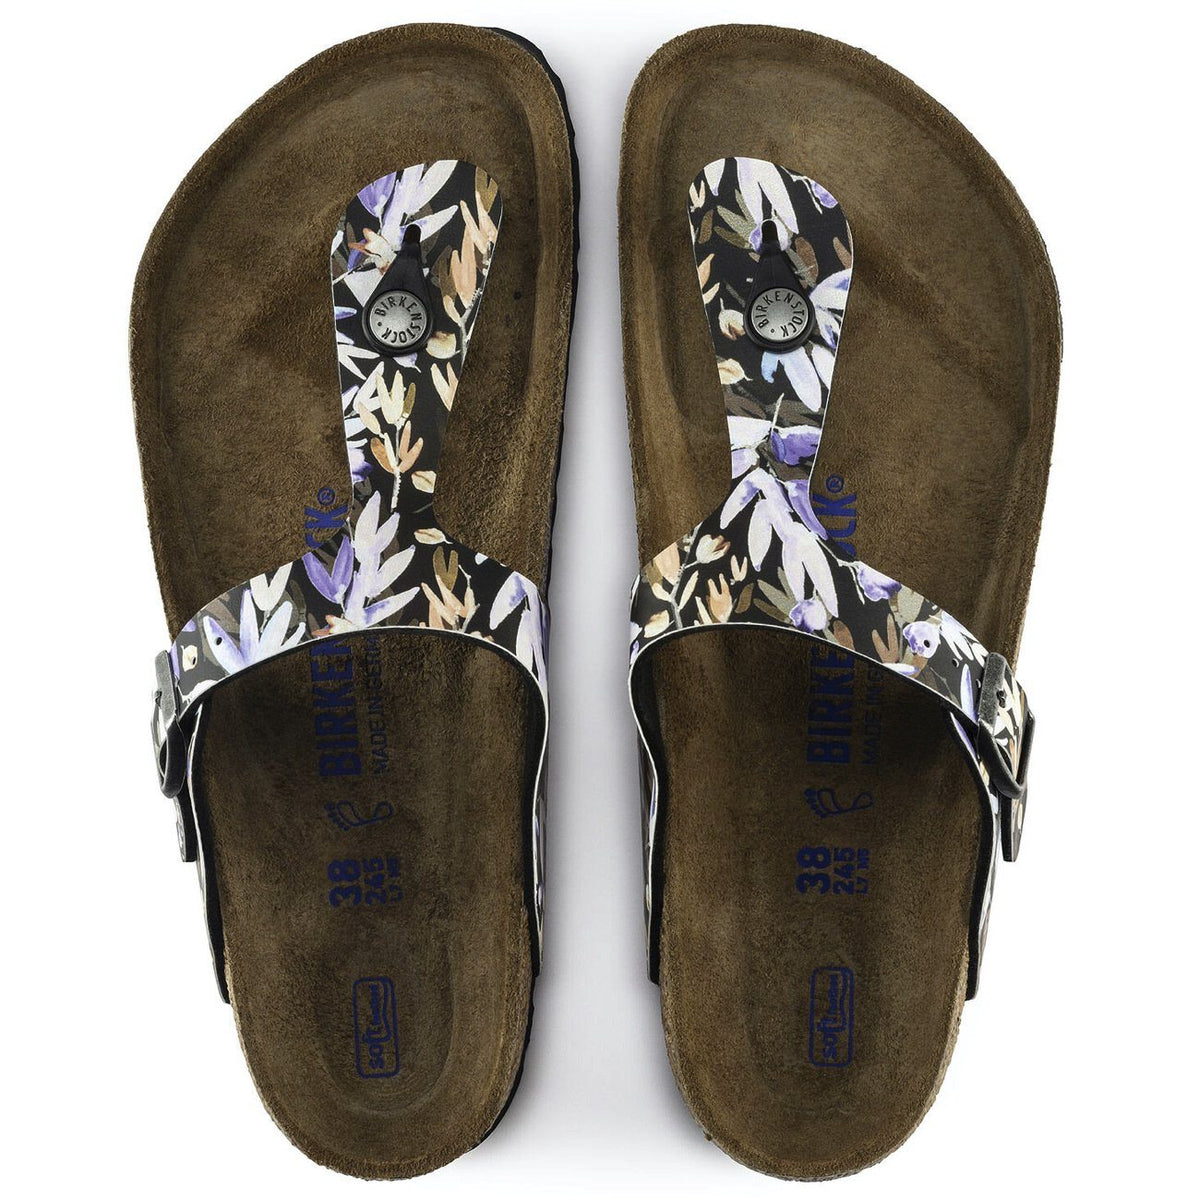 Birkenstock Seasonal, Gizeh Floral Fades, Soft Footbed, Birko-Flor, Regular Fit, Black Sandals Birkenstock Seasonal